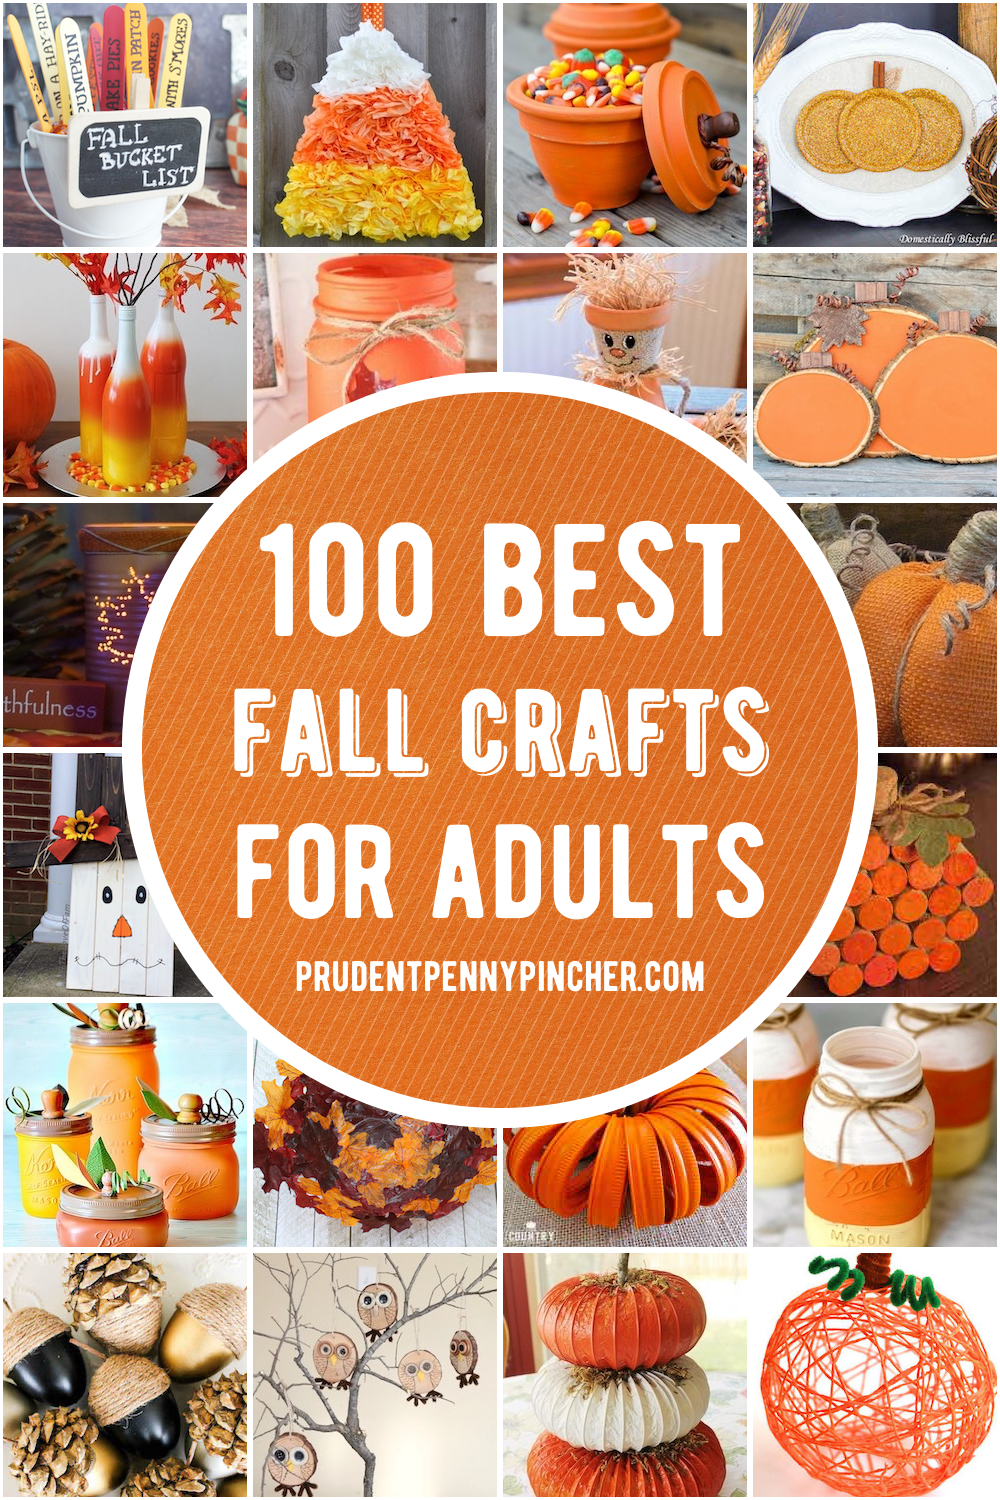 100 Best Fall Crafts for Adults in 2020 Fall crafts for